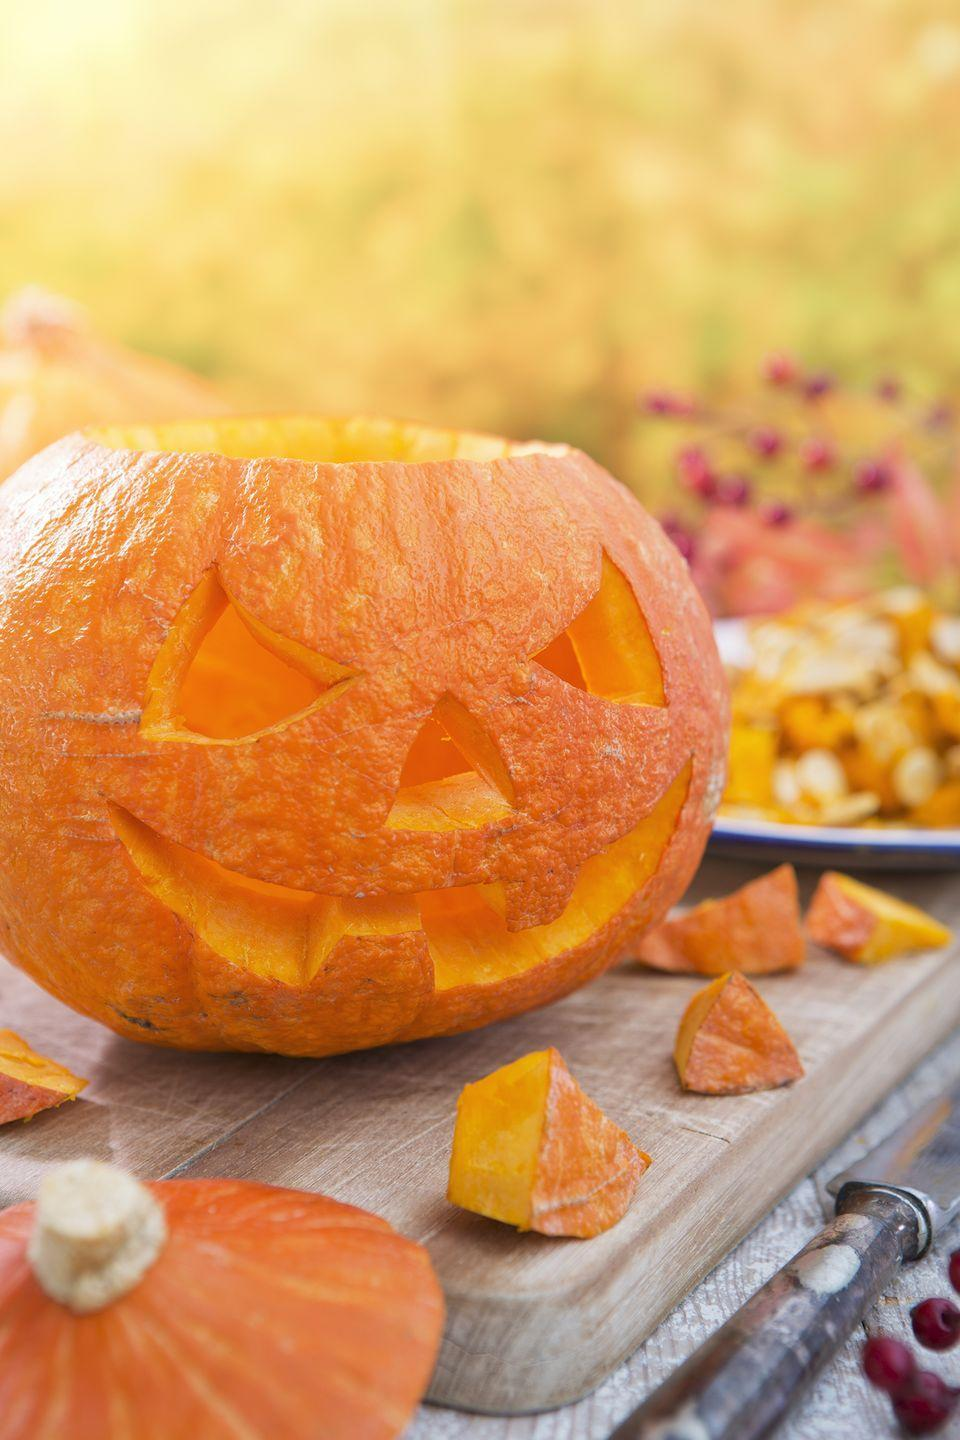 "<p>Lay out a big sheet of kraft paper, then let everyone get busy carving up a storm. (And save all those <a href=""https://www.countryliving.com/food-drinks/g3734/what-to-do-with-pumpkin-seeds/"" rel=""nofollow noopener"" target=""_blank"" data-ylk=""slk:pumpkin seeds to roast later!"" class=""link rapid-noclick-resp"">pumpkin seeds to roast later!</a>)</p><p><strong><a class=""link rapid-noclick-resp"" href=""https://www.amazon.com/Halloween-Haunters-Ultimate-Professional-Lanterns/dp/B074XJHZX7/?tag=syn-yahoo-20&ascsubtag=%5Bartid%7C10050.g.4620%5Bsrc%7Cyahoo-us"" rel=""nofollow noopener"" target=""_blank"" data-ylk=""slk:SHOP PUMPKIN CARVING KIT"">SHOP PUMPKIN CARVING KIT</a></strong></p>"